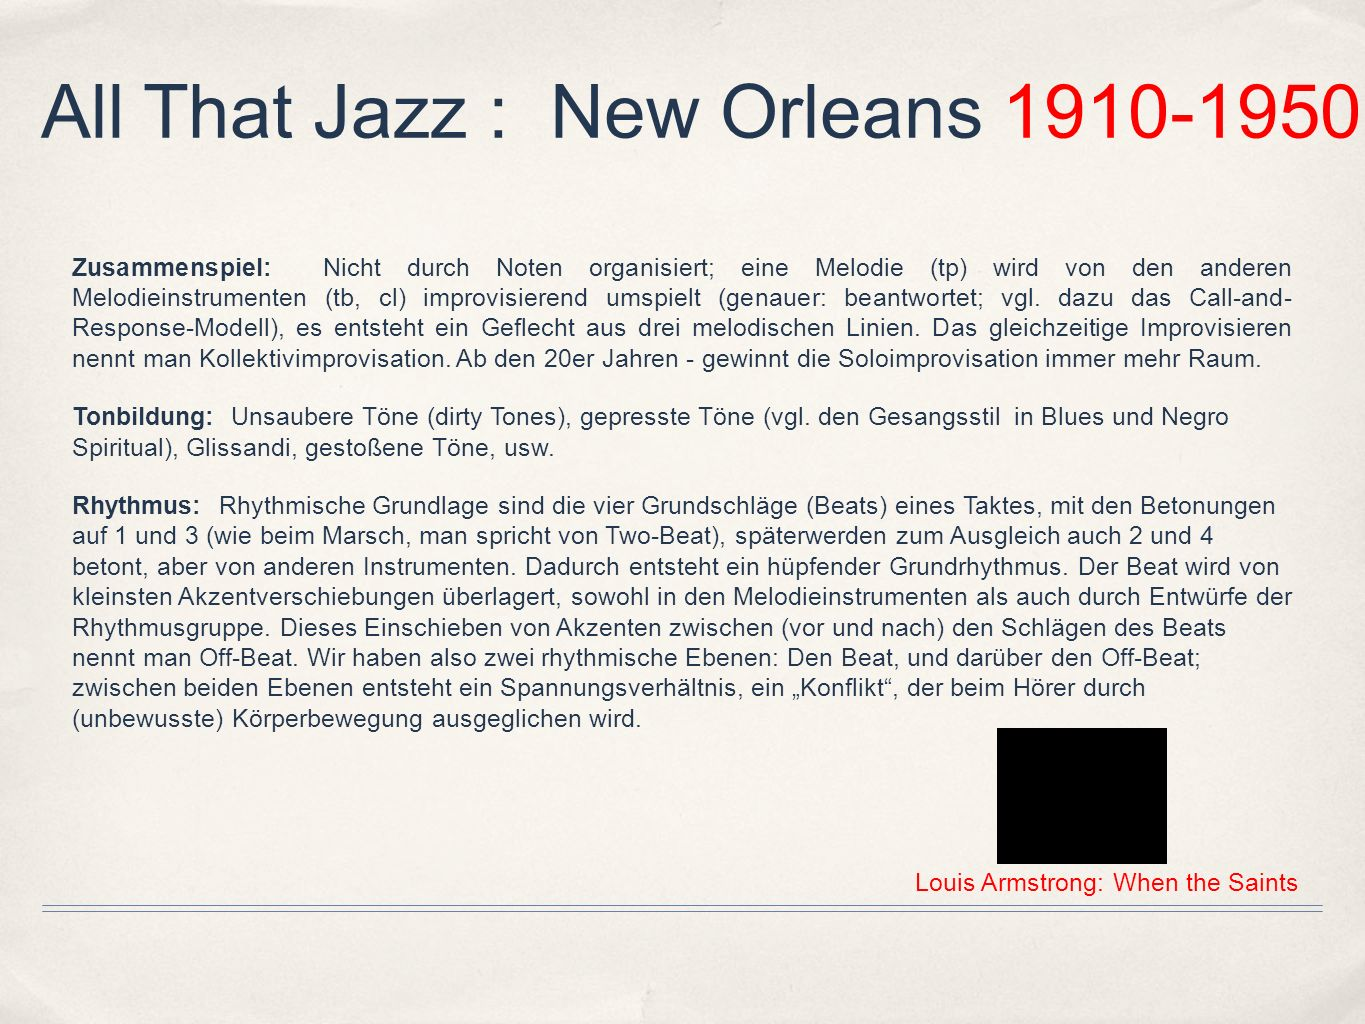 All That Jazz : New Orleans 1910-1950